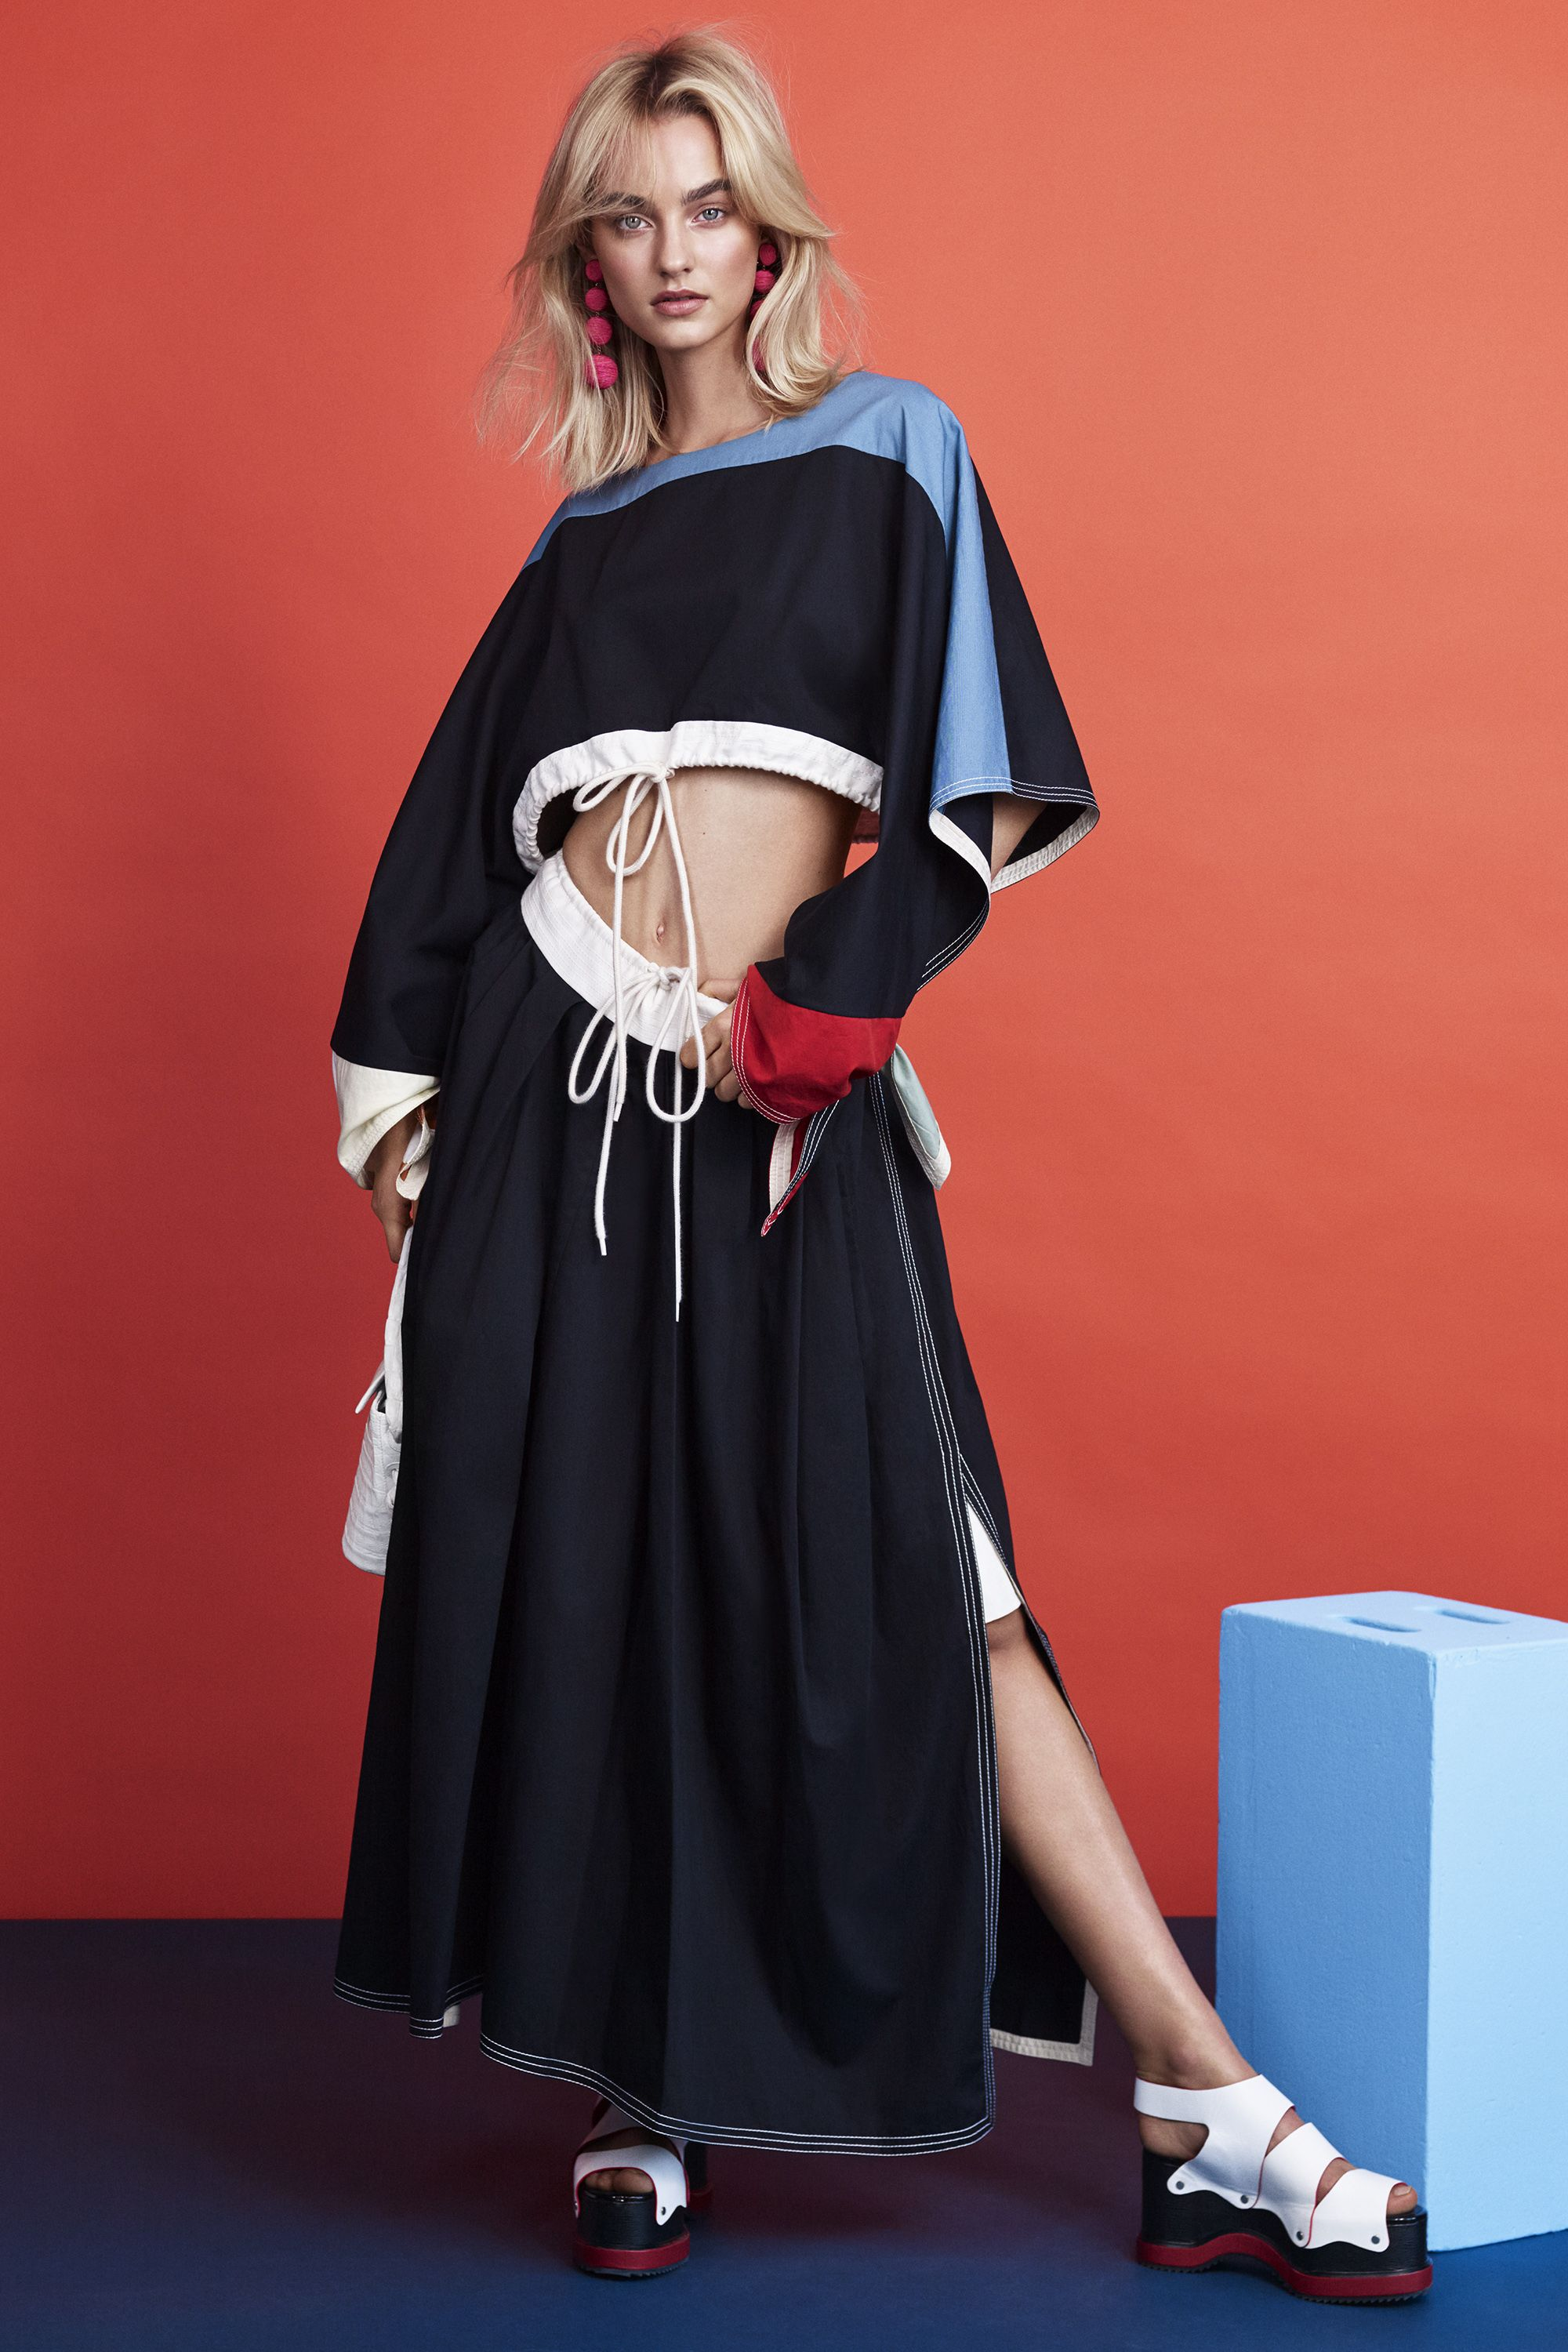 "<p><strong data-redactor-tag=""strong"" data-verified=""redactor"">Chloé </strong>top, $1,150, and skirt, $1,050, Saks Fifth Avenue, 877-551-7257;<strong data-redactor-tag=""strong"" data-verified=""redactor""> Rebecca de Ravenel </strong>earrings, $325, <a href=""https://rebeccaderavenel.com/"" target=""_blank"" data-tracking-id=""recirc-text-link"">rebeccaderavenel.com</a>; <strong data-redactor-tag=""strong"" data-verified=""redactor"">Nancy Gonzalez</strong> bag, $2,350, Bergdorf Goodman, 888-774-2424; <strong data-redactor-tag=""strong"" data-verified=""redactor"">Proenza Schouler</strong> shoes, $1,050, 212-420-7300.<br></p>"